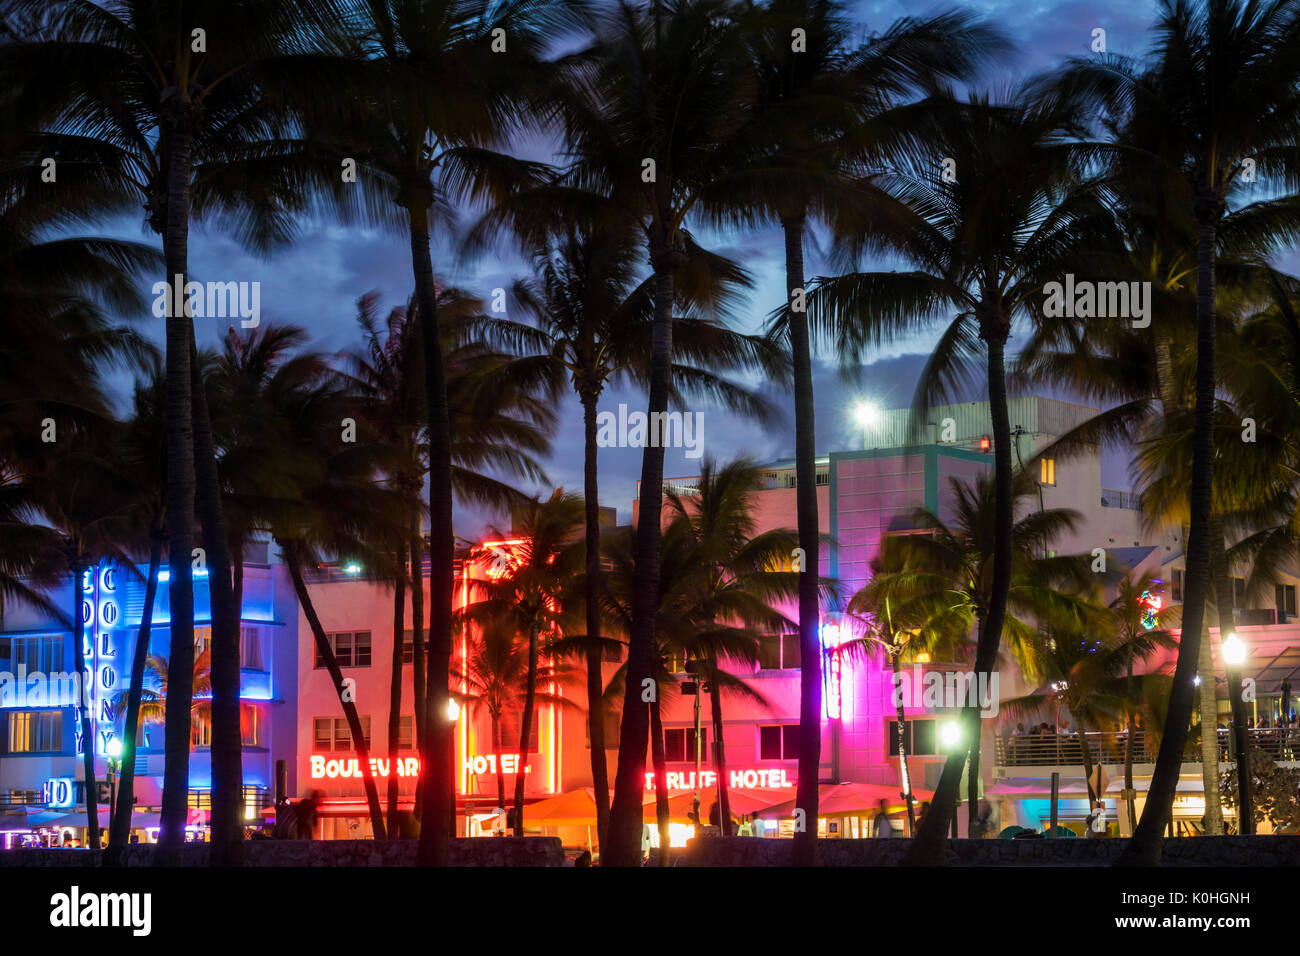 Miami Beach Florida Ocean Drive Art Deco District Lummus Park hotels neon signs palm trees dusk night nightlife Colony Boulevard Starlite hotel - Stock Image